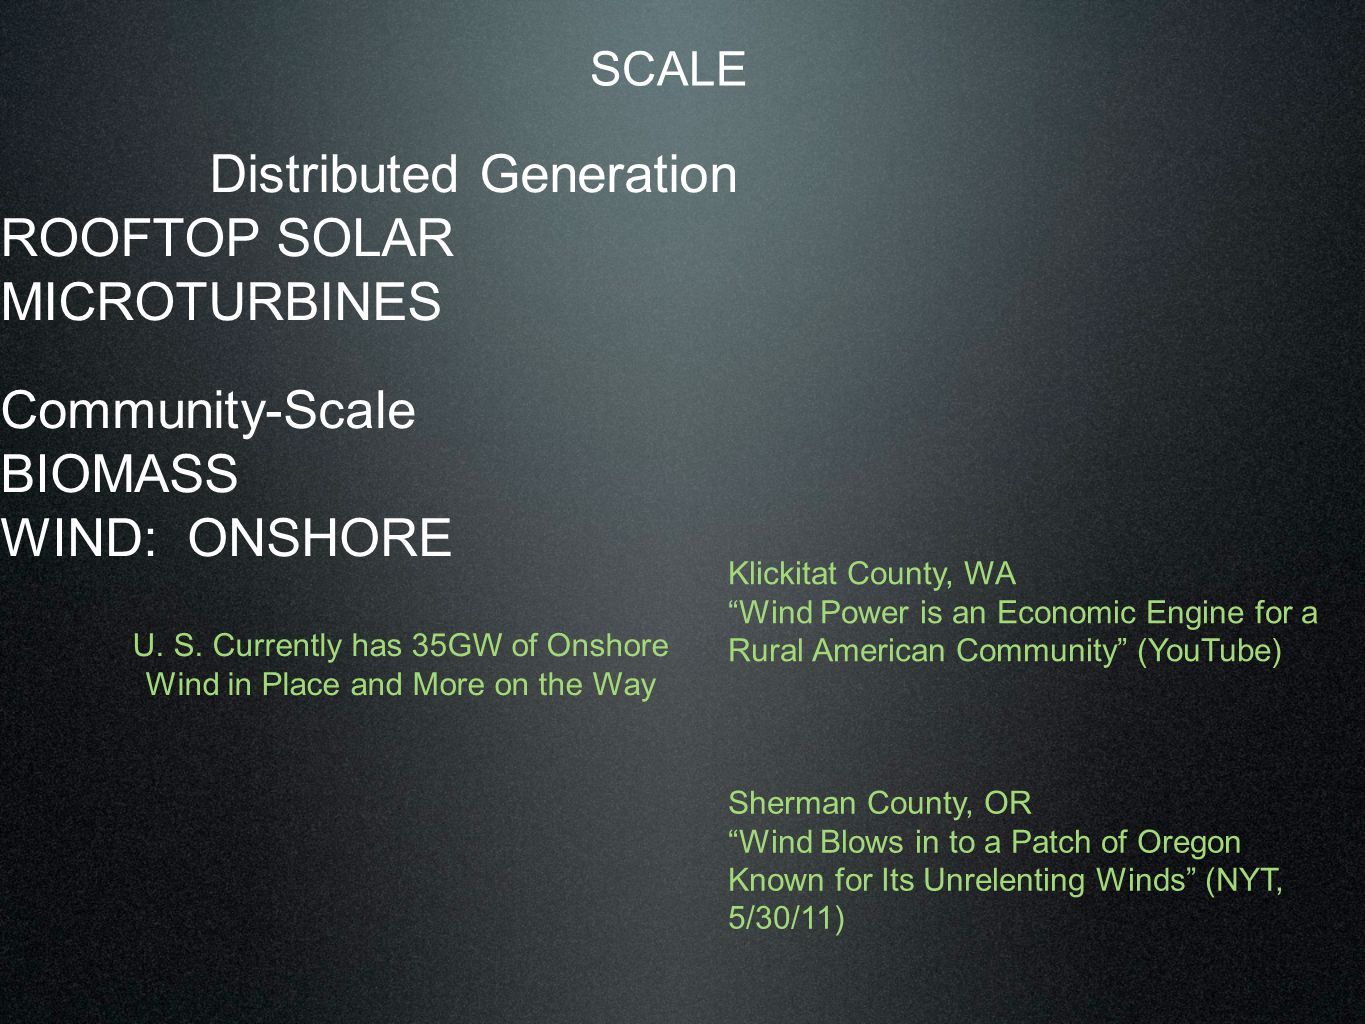 "SCALE Distributed Generation ROOFTOP SOLAR MICROTURBINES Community-Scale BIOMASS WIND: ONSHORE Biomass Klickitat County, WA ""Wind Power is an Economic"